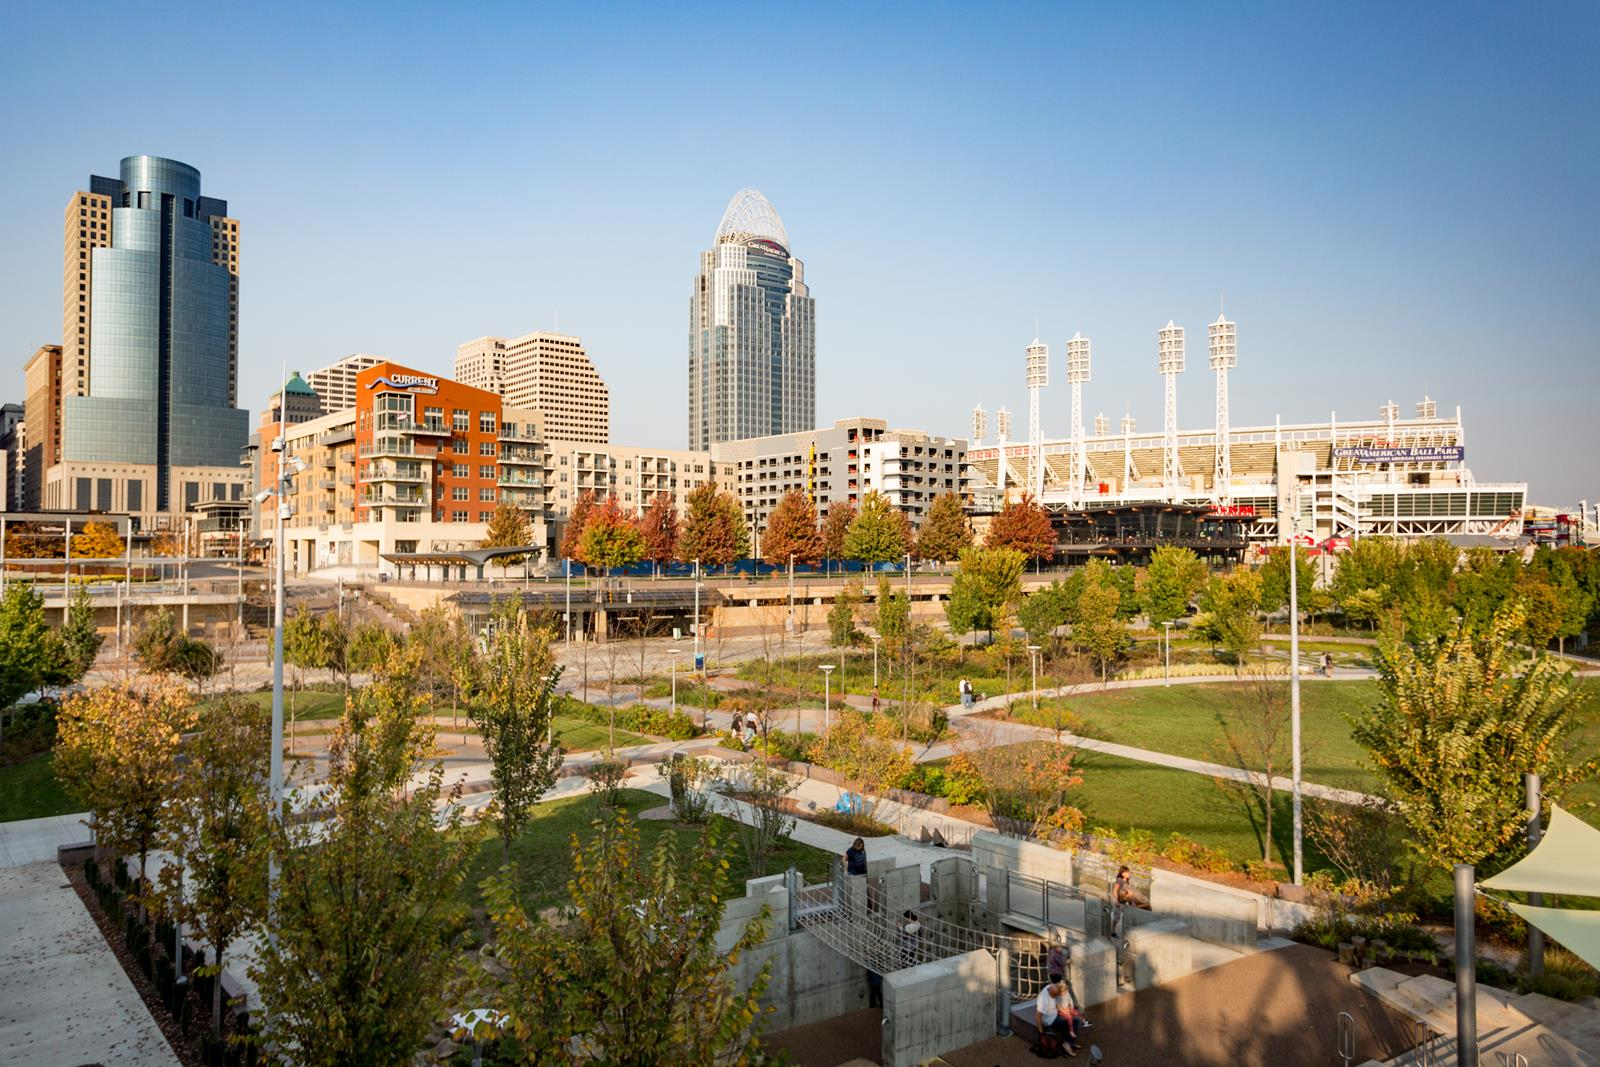 Smale Riverfront Park and Banks in Fall